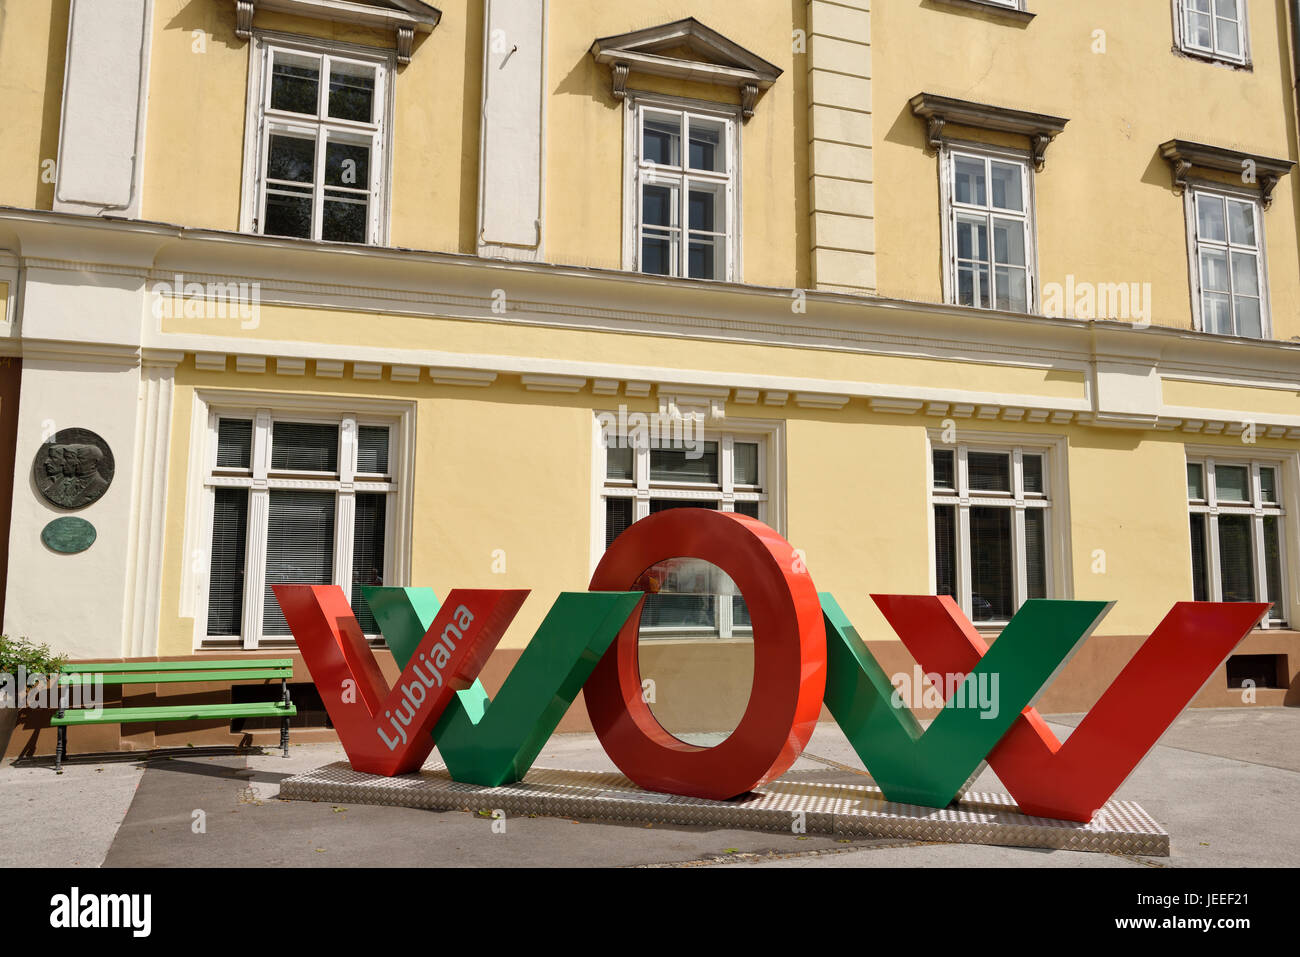 Red and green interactive WOW art installation at the Slovenian Tourist Information Centre of Ljubljana celebrating Stock Photo